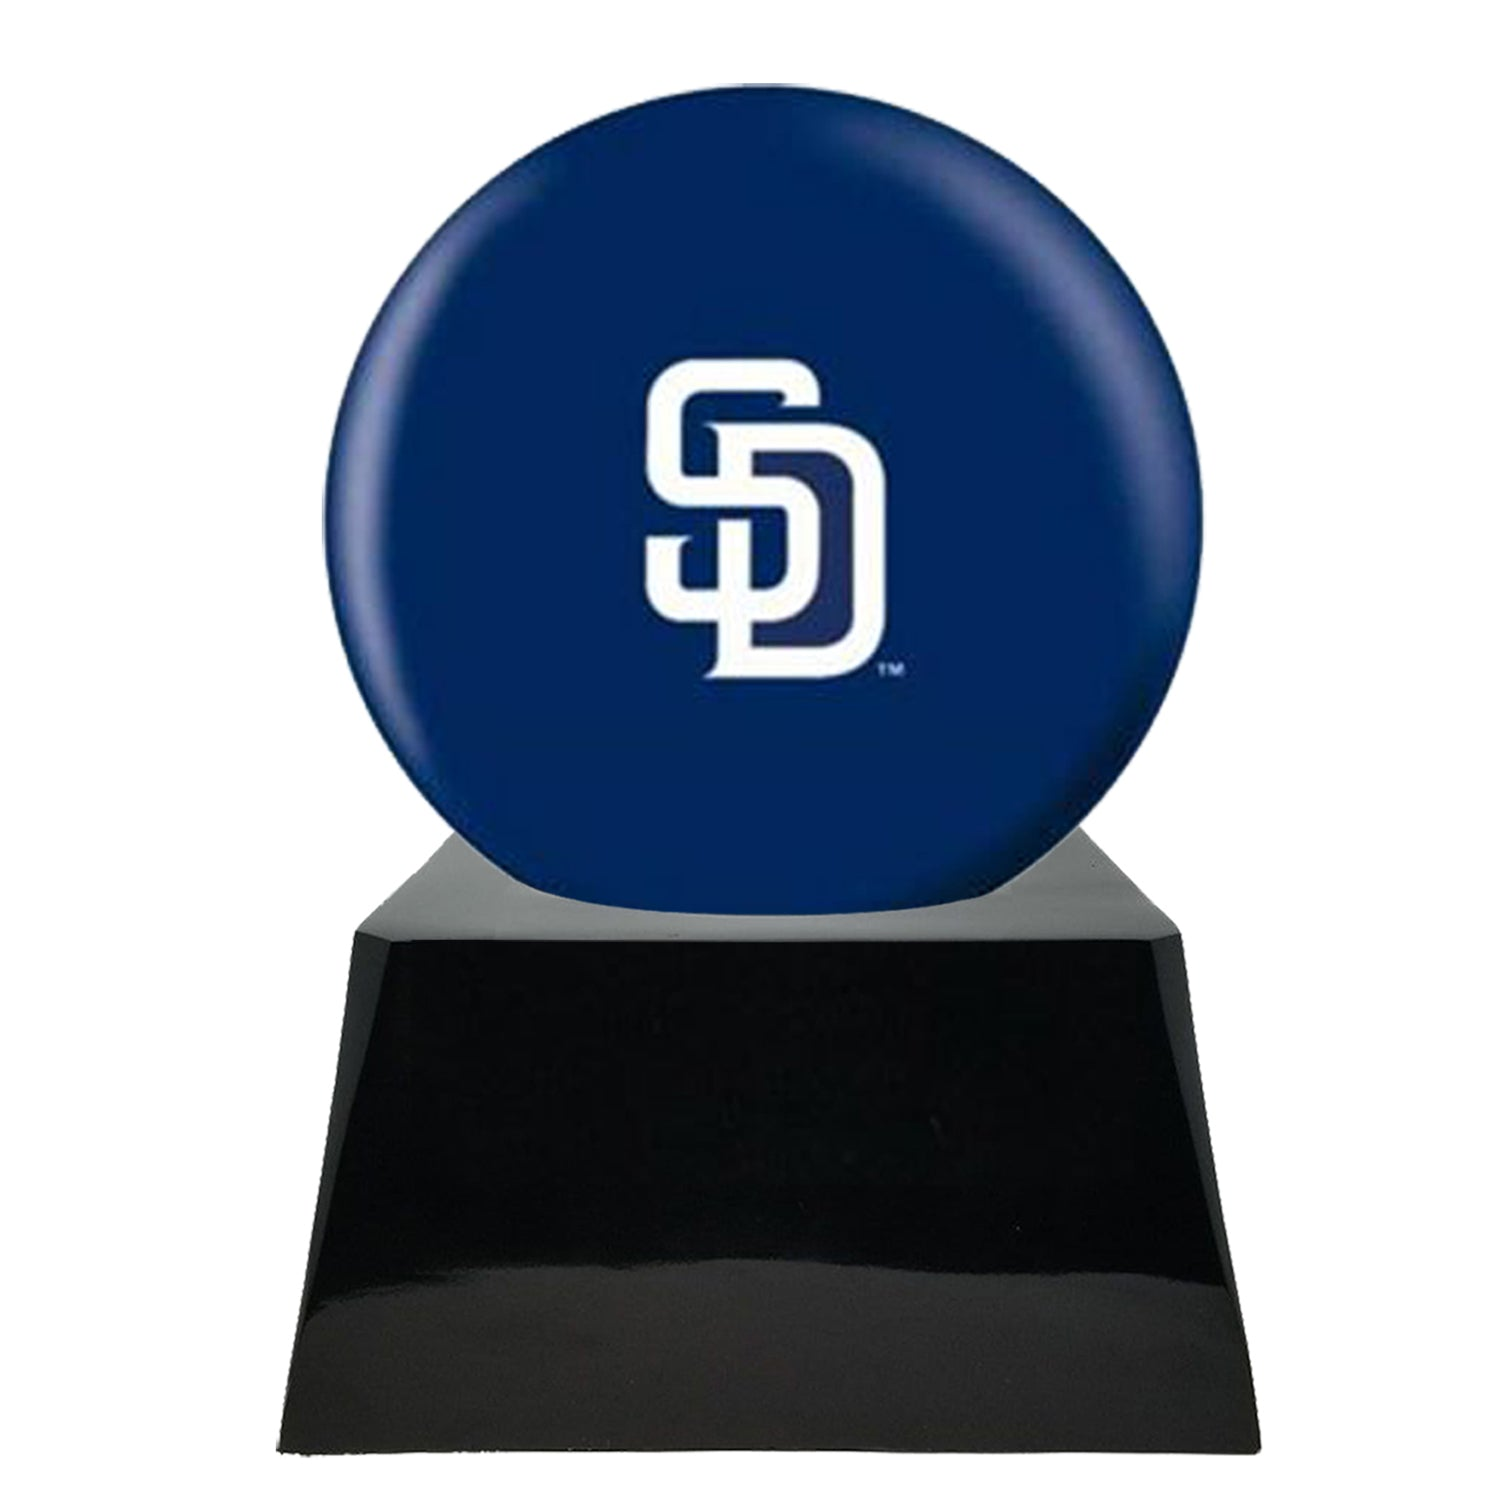 Baseball Team Urn - San Diego Padres Ball Decor with Custom Metal Plaque Baseball Cremation Urn for Human Ashes - MLB URN - Memorials4u